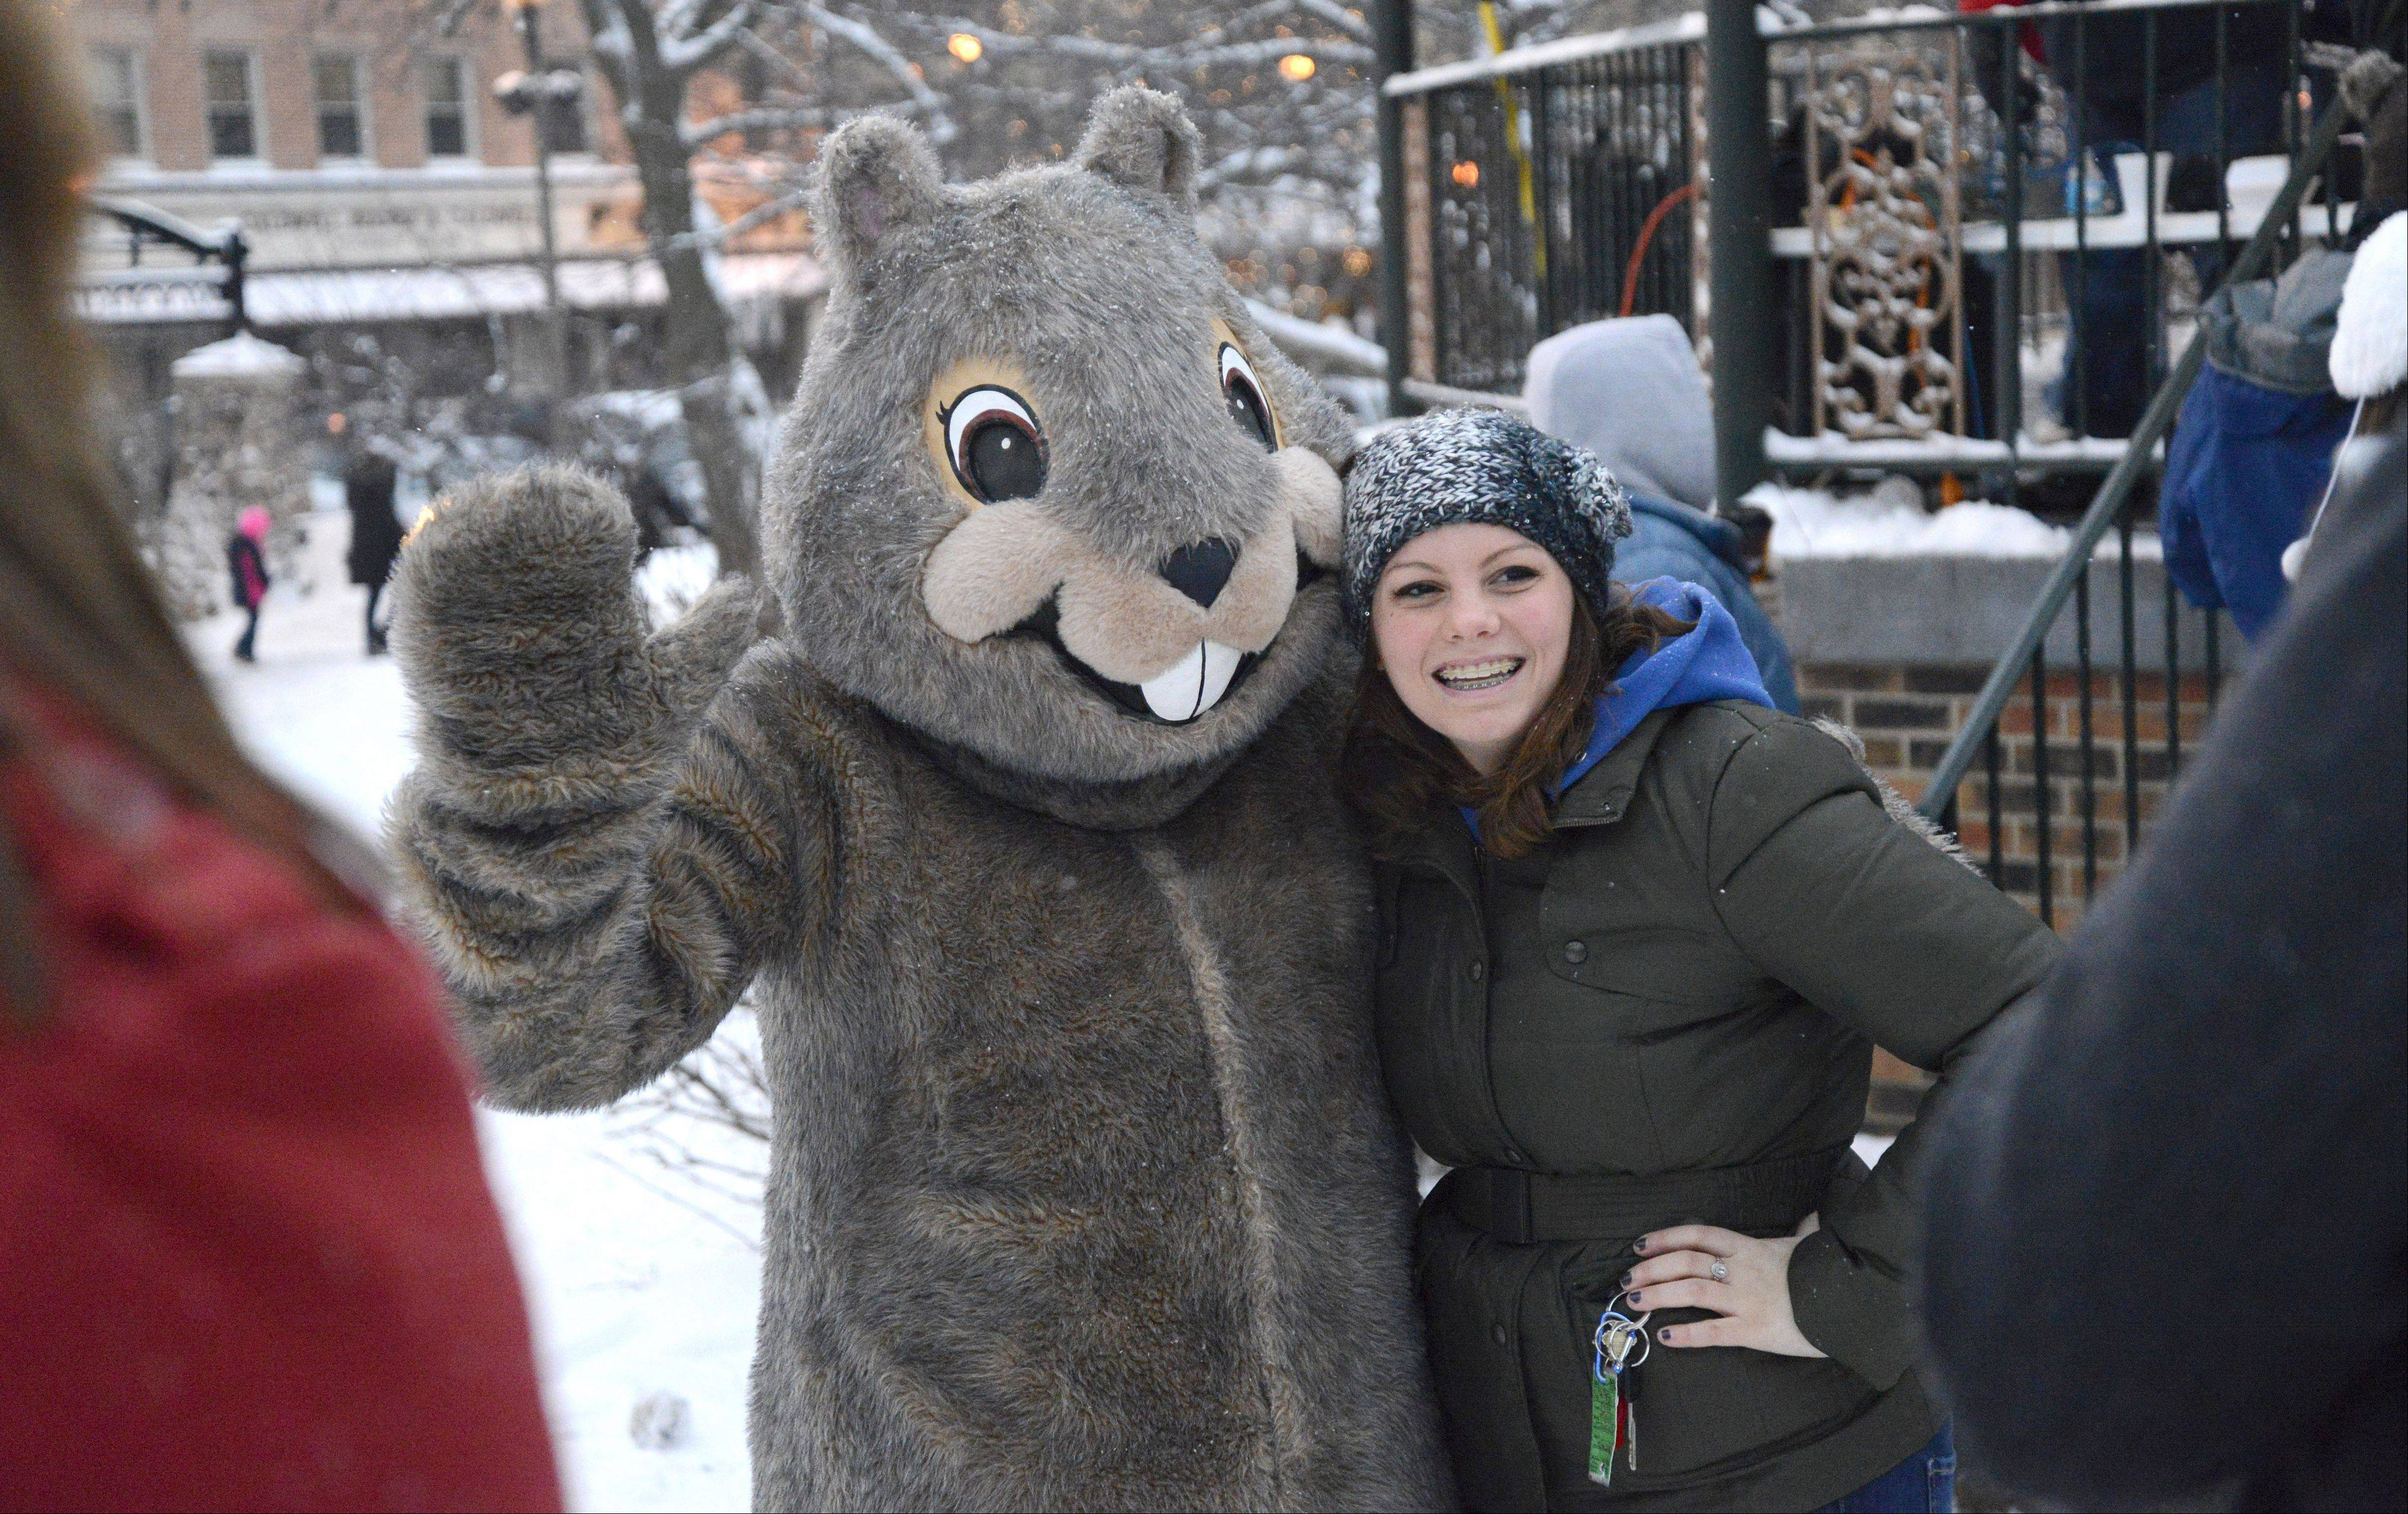 Ali Barlas of Woodstock gets her photo taken with Woodstock Willie during the Groundhog Day festivities in Woodstock Square on Saturday.